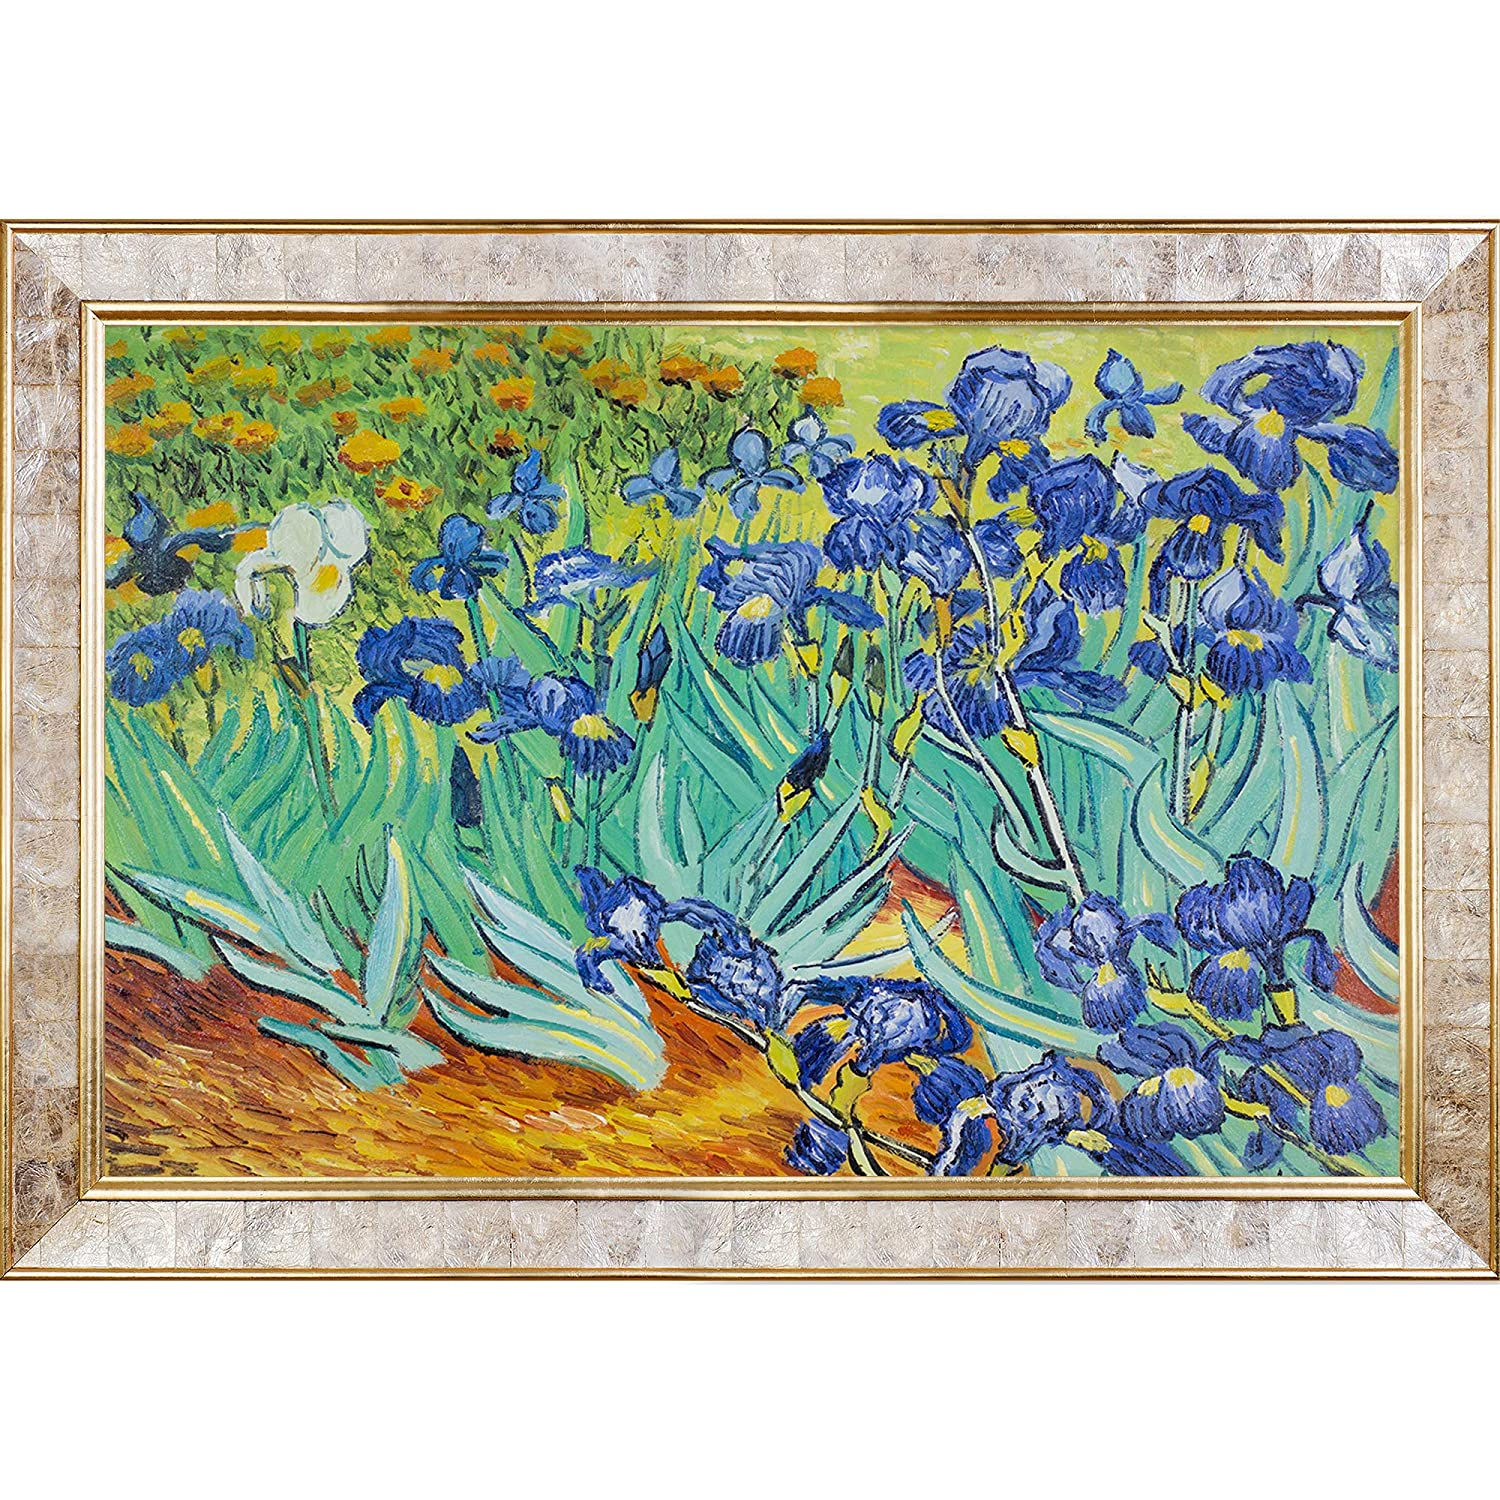 Medium overstockArt Irises by Van Gogh with Gold Pearl Inlay Frame